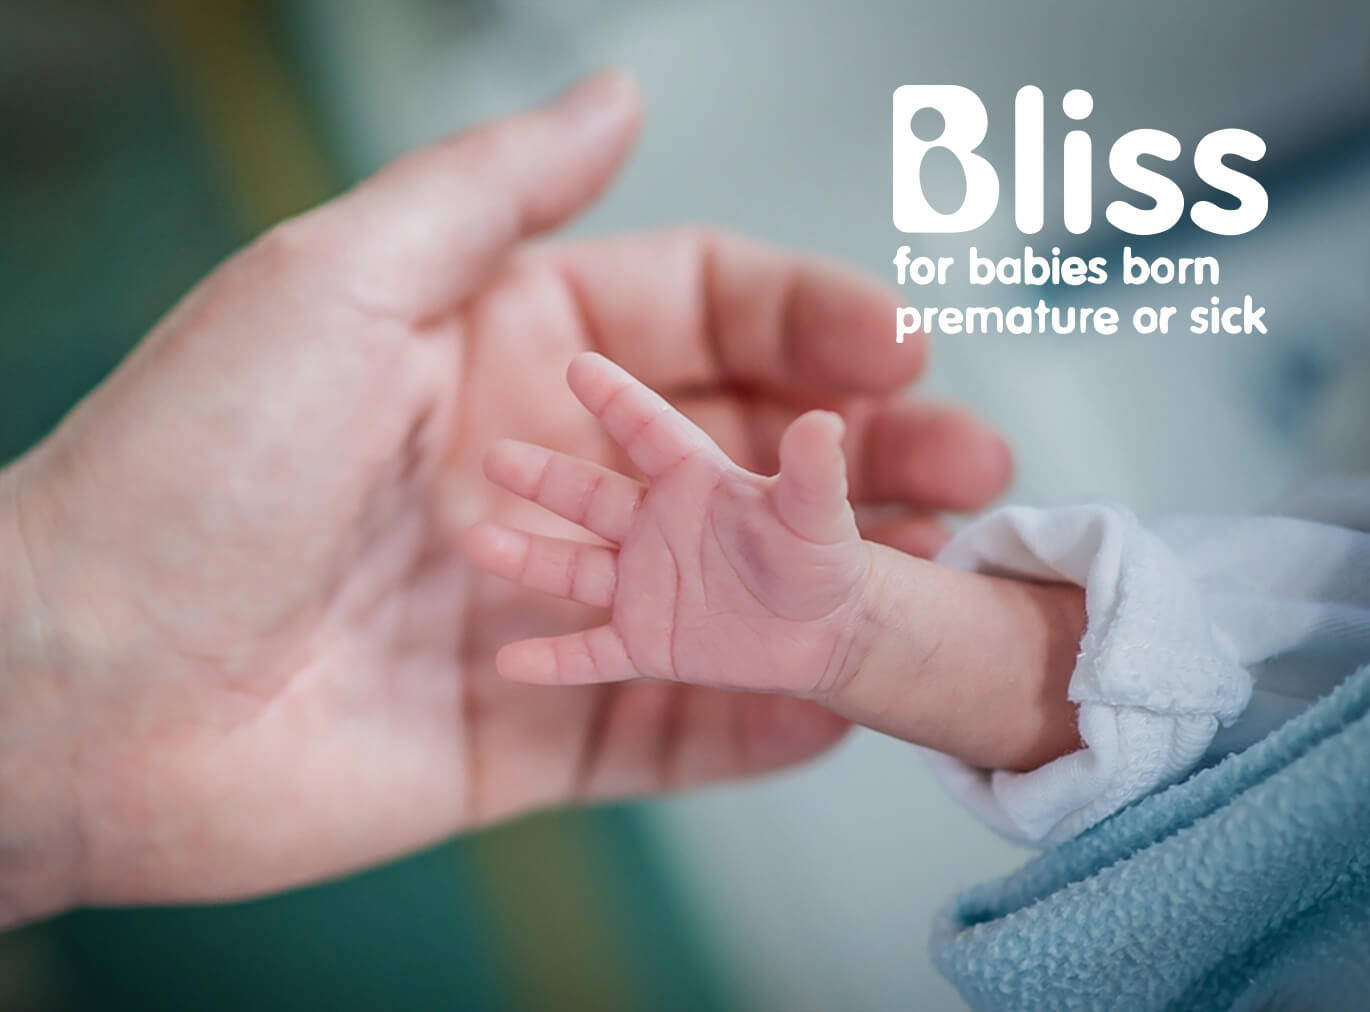 Bliss - for babies born premature or sick